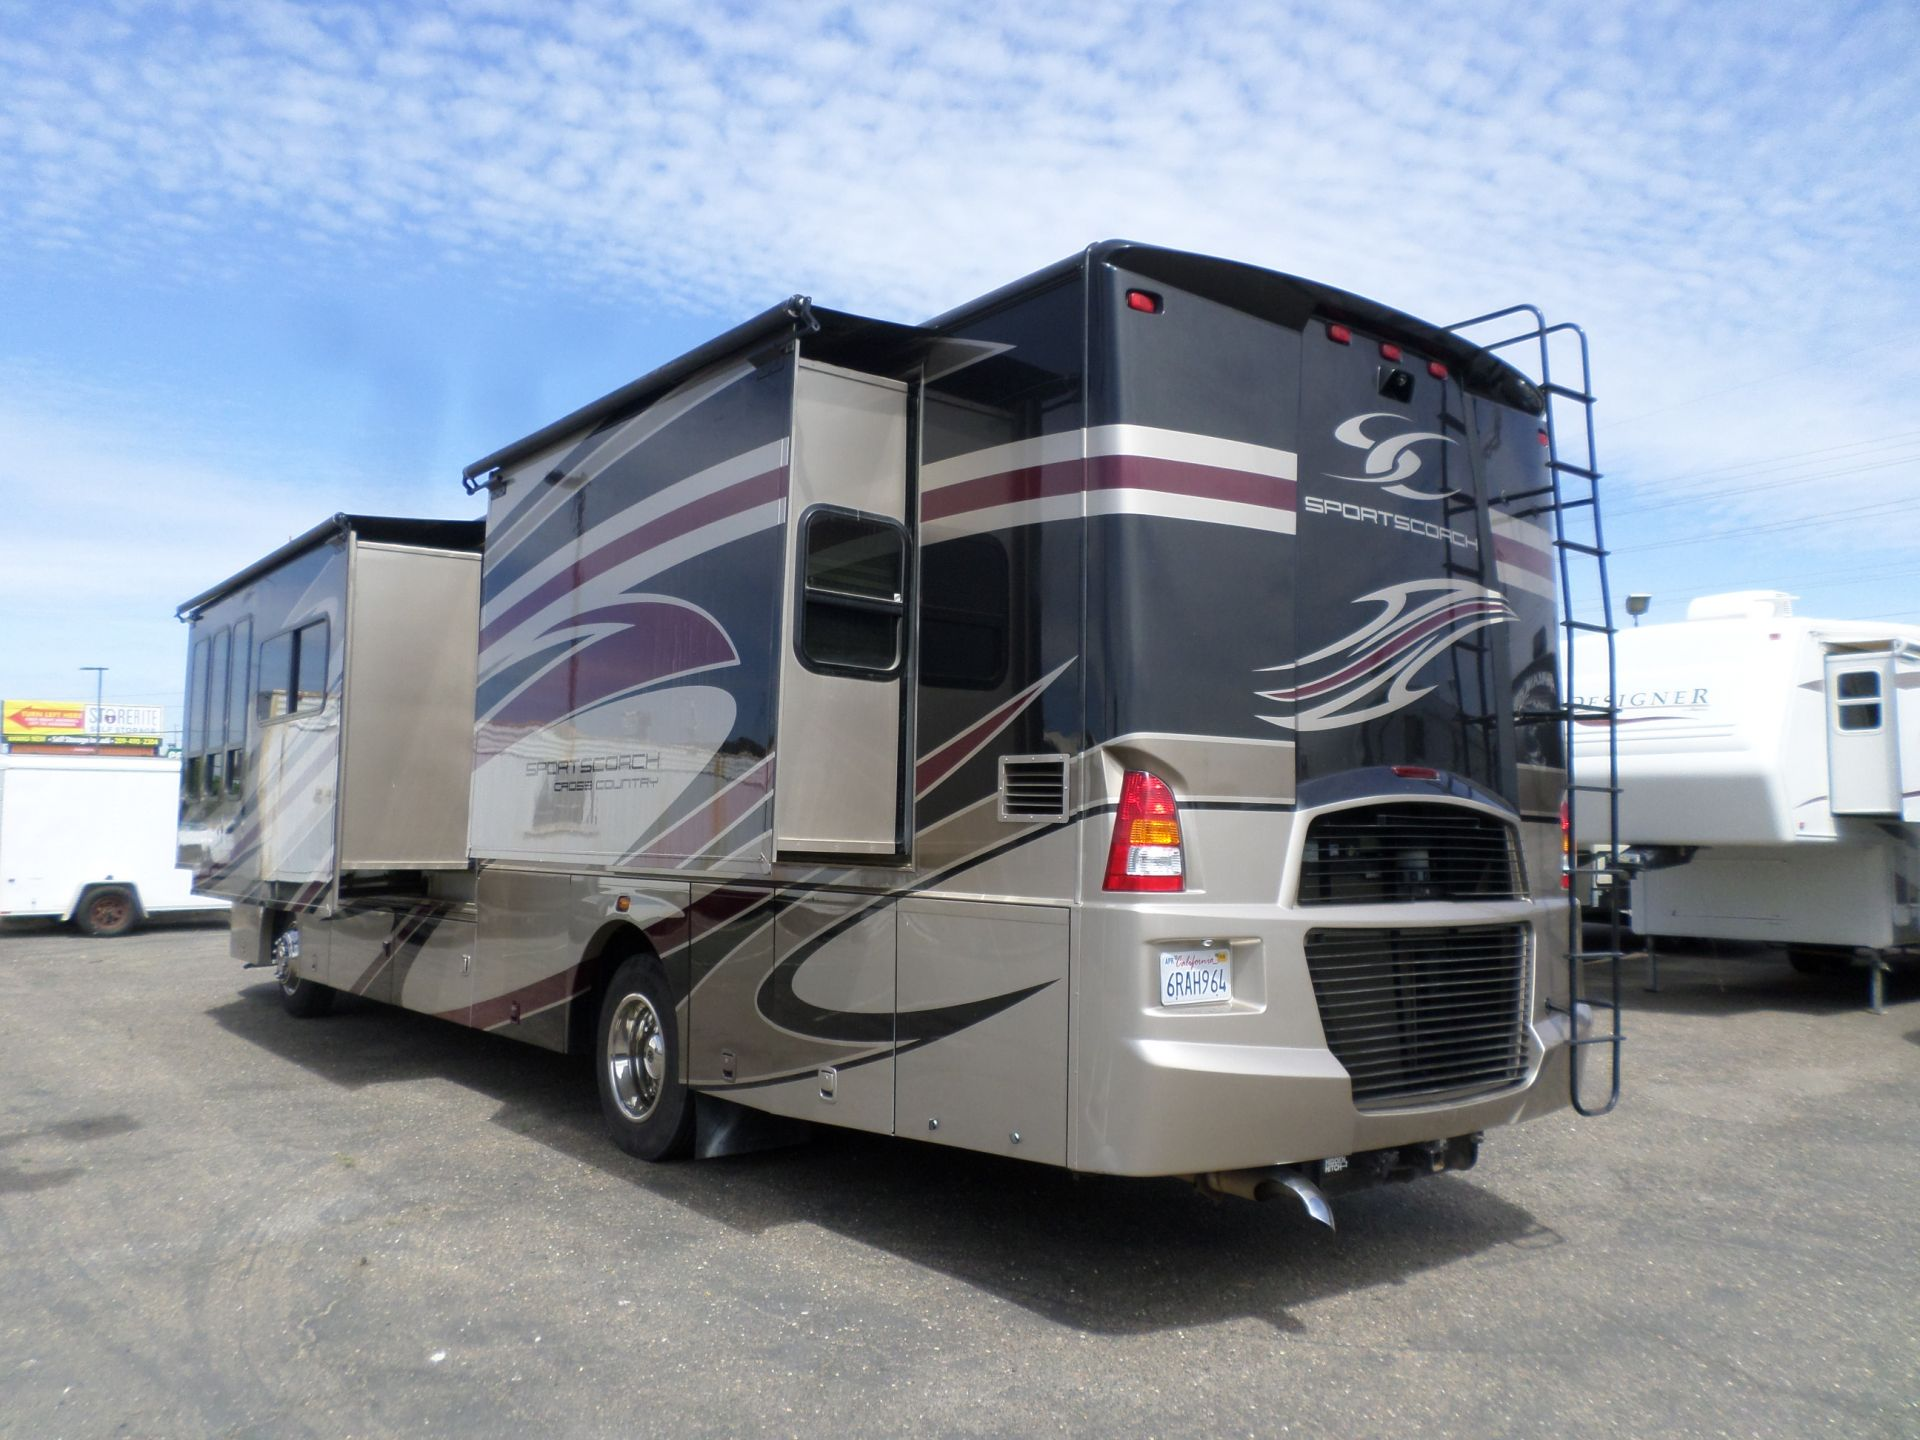 RV for sale: 2011 Sportscoach Cross Country Diesel Pusher ...